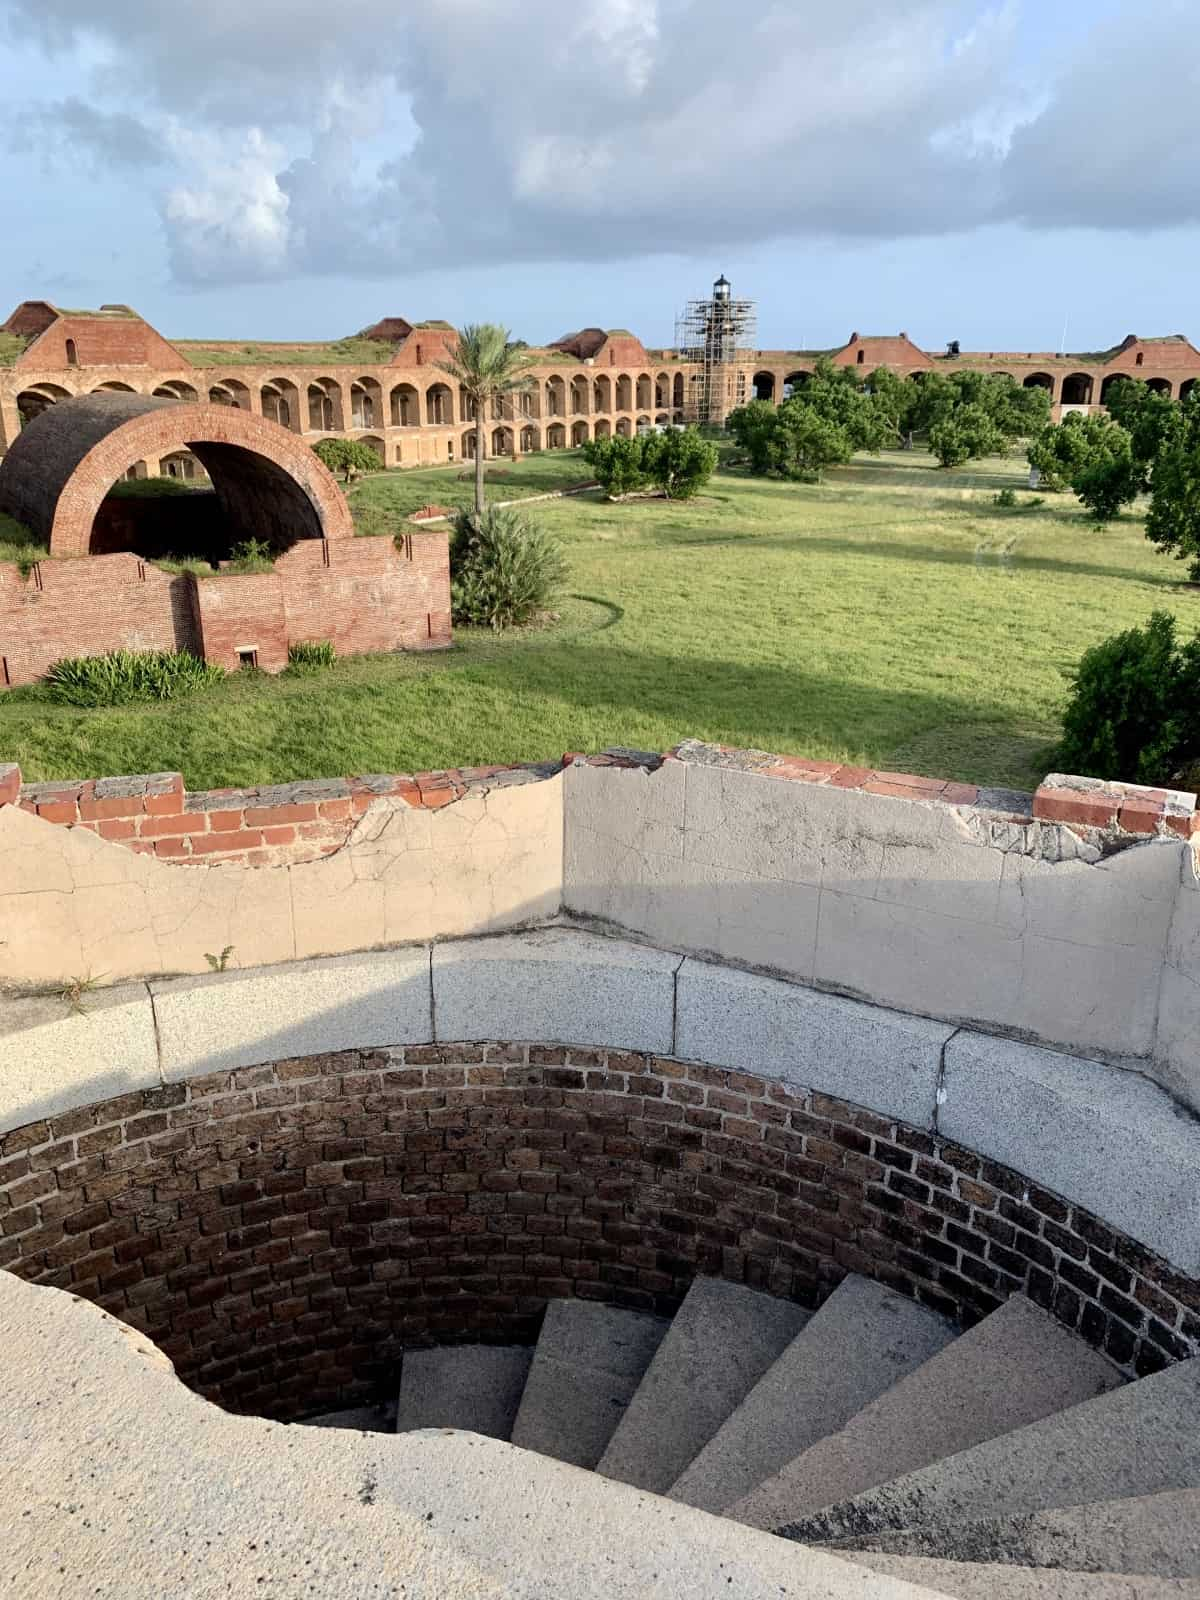 The spiral staircases of Fort Jefferson...climb to get the best views of Dry Tortugas National Park